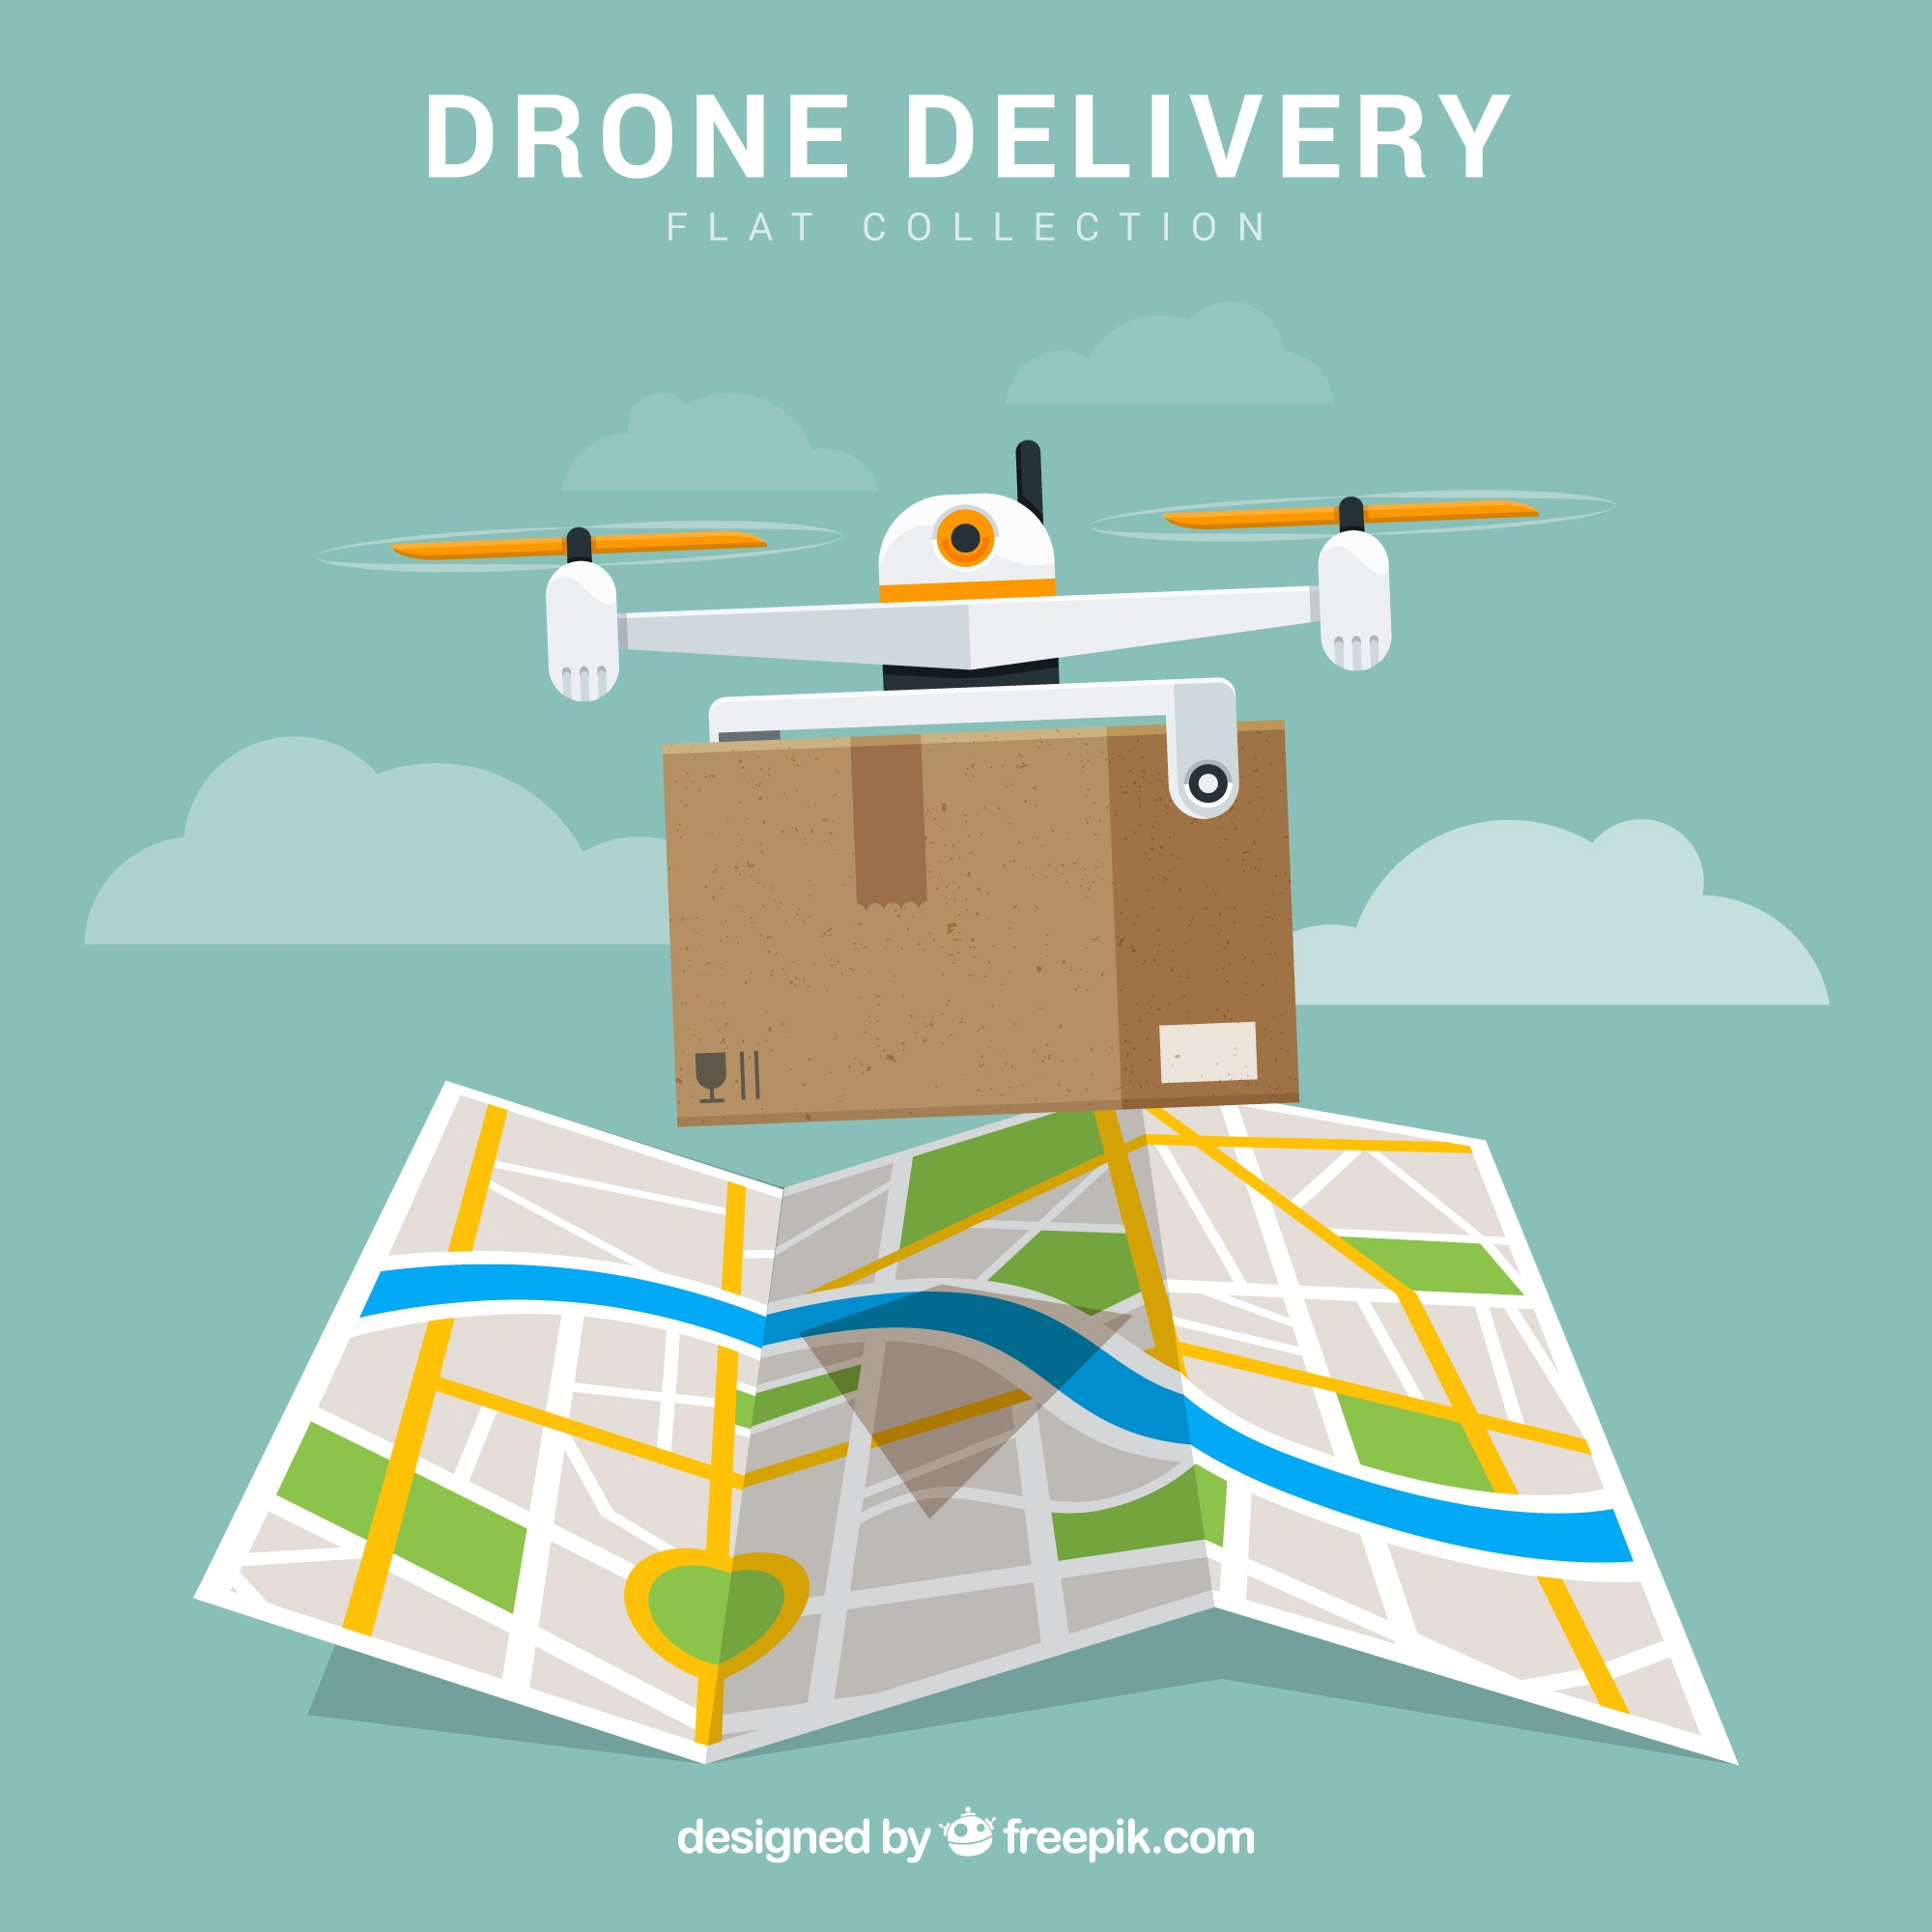 Delivery drone with box and map